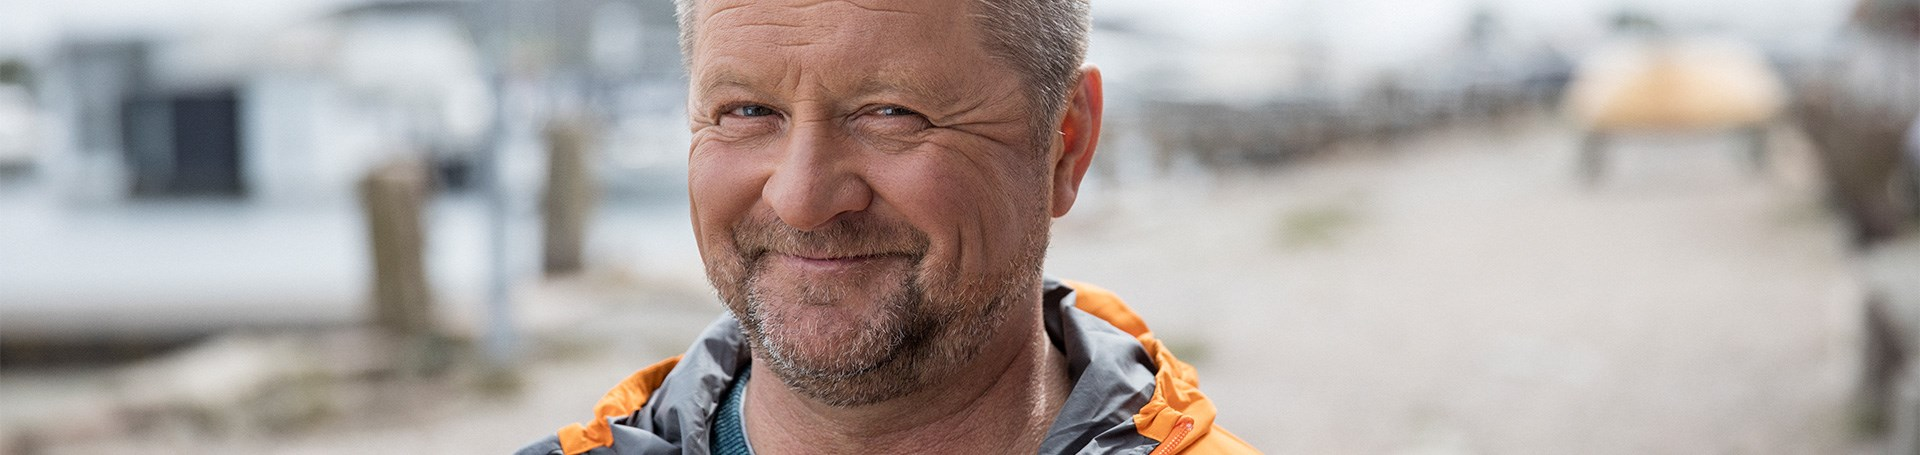 VP_VP_ALL_1920x455_1805_Stig_Strand_Orangejacket_Summer_Closeup.jpg